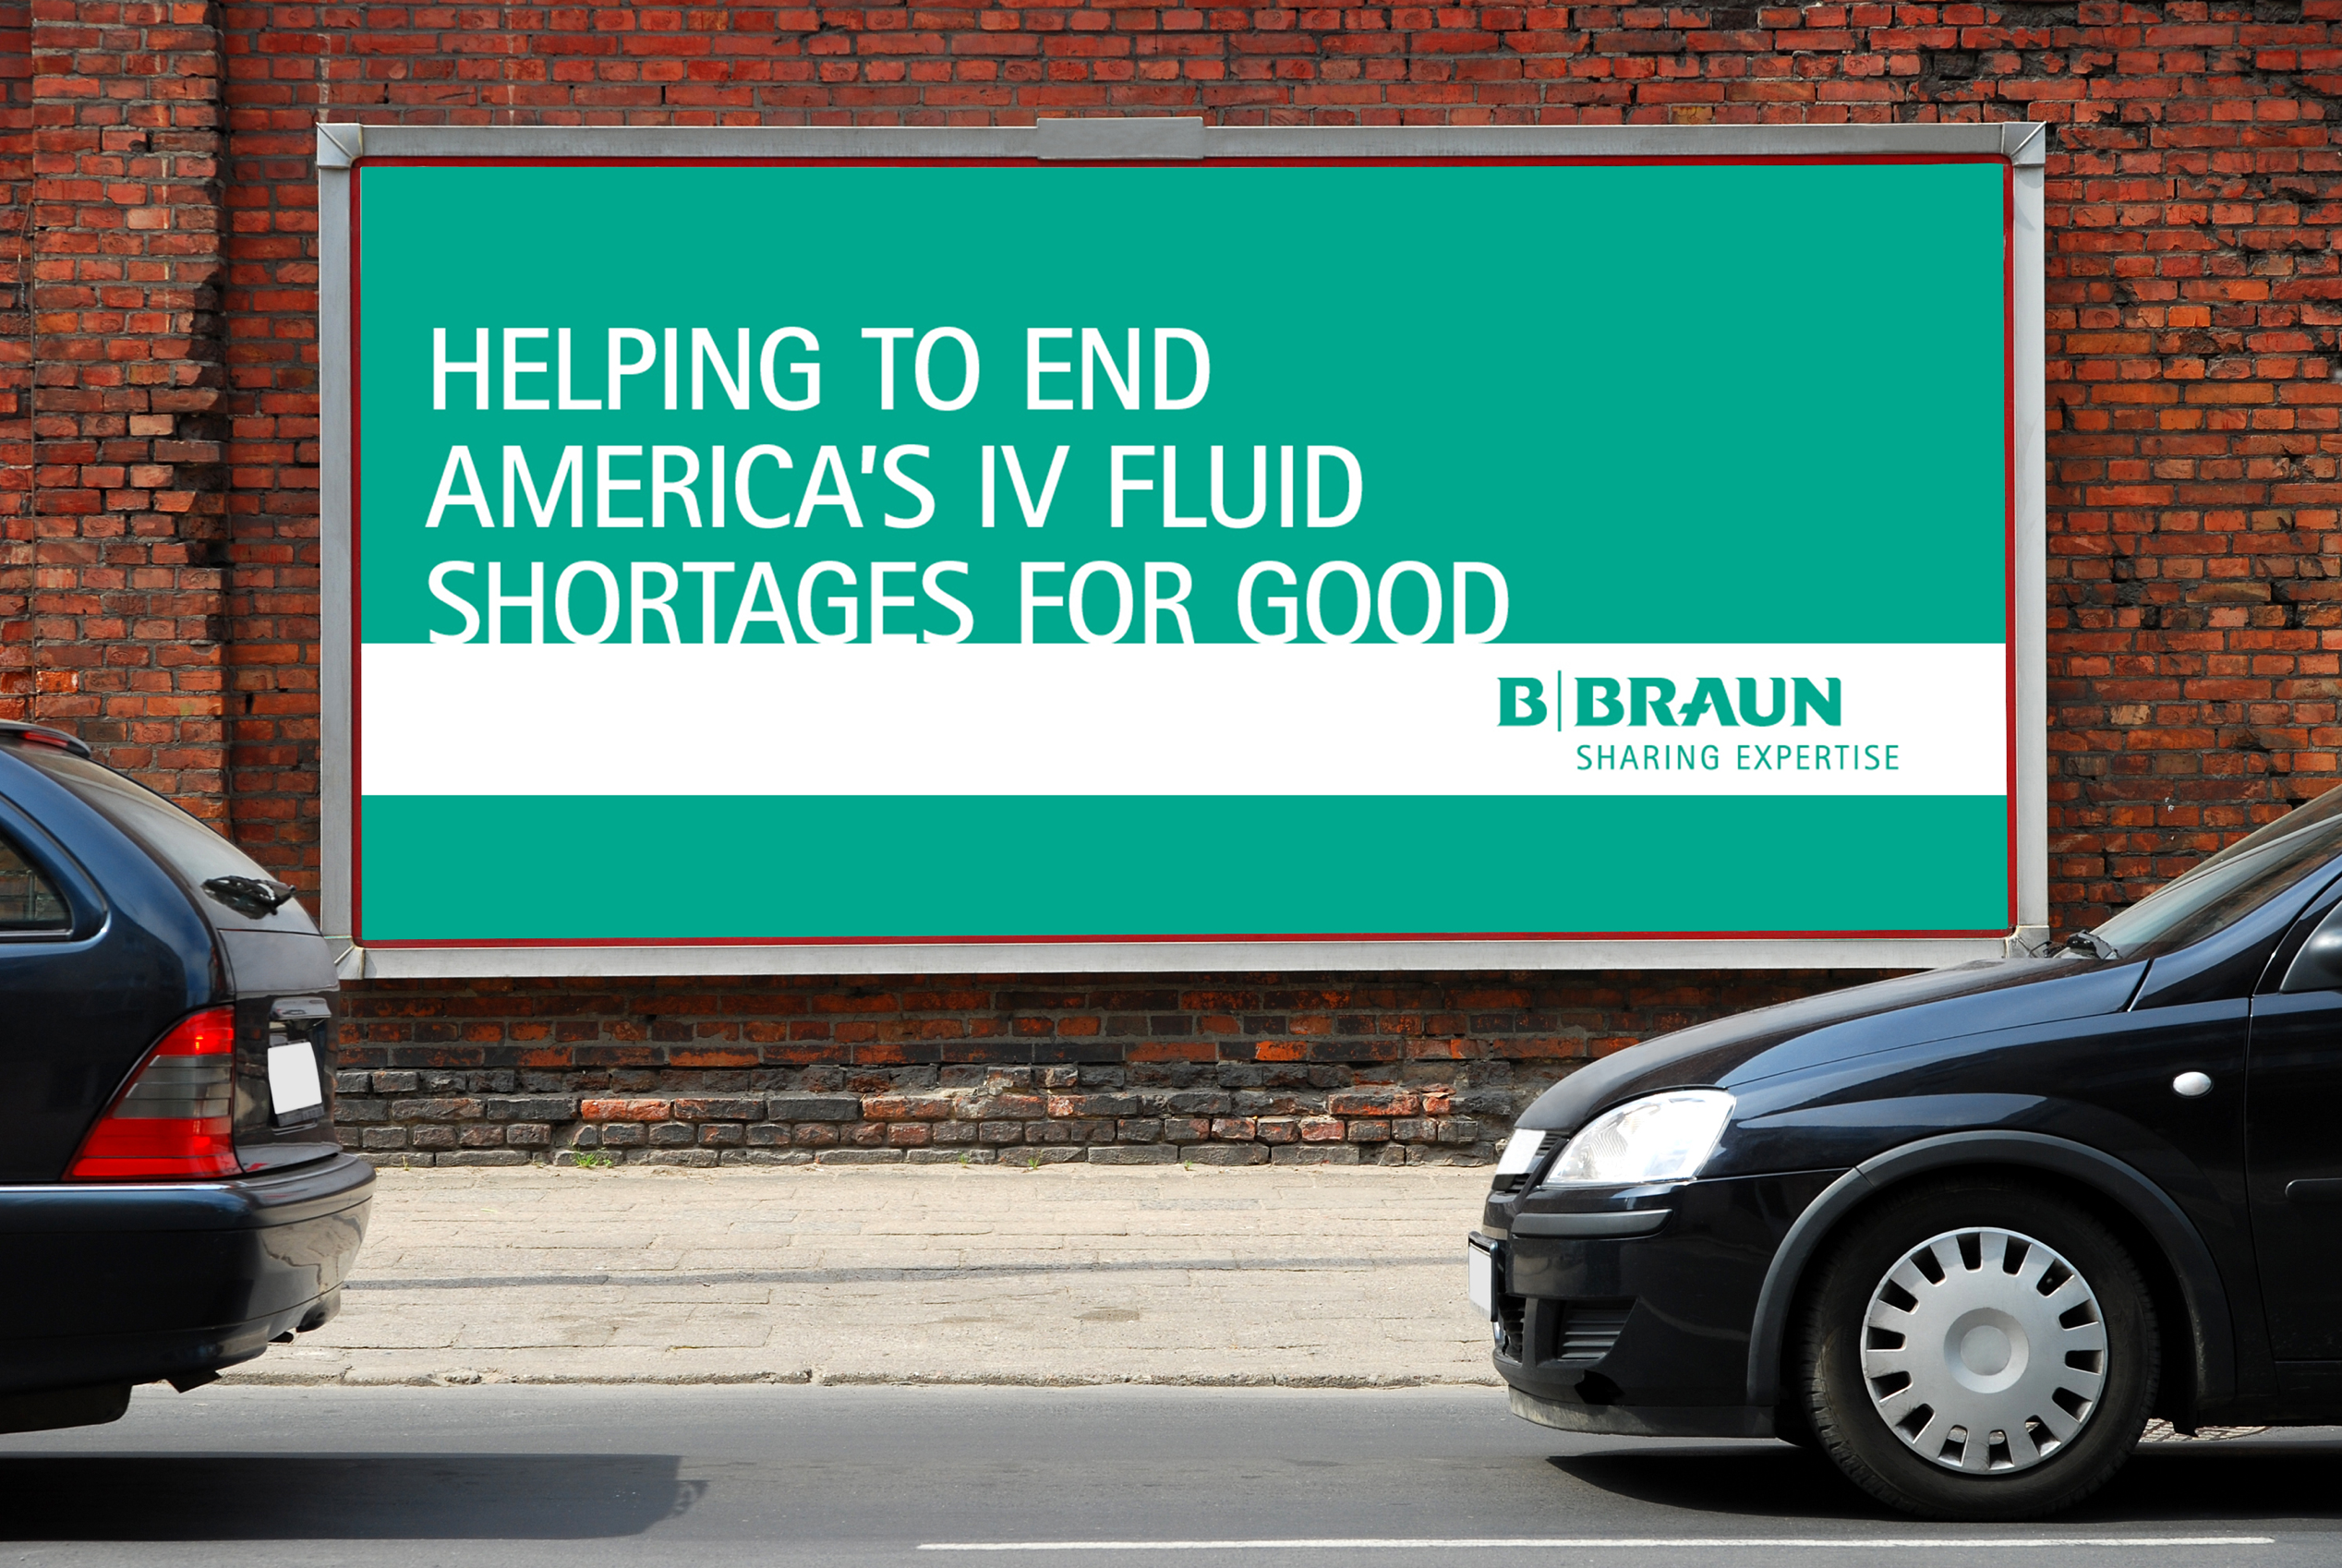 b braun sharing expertise billboard image